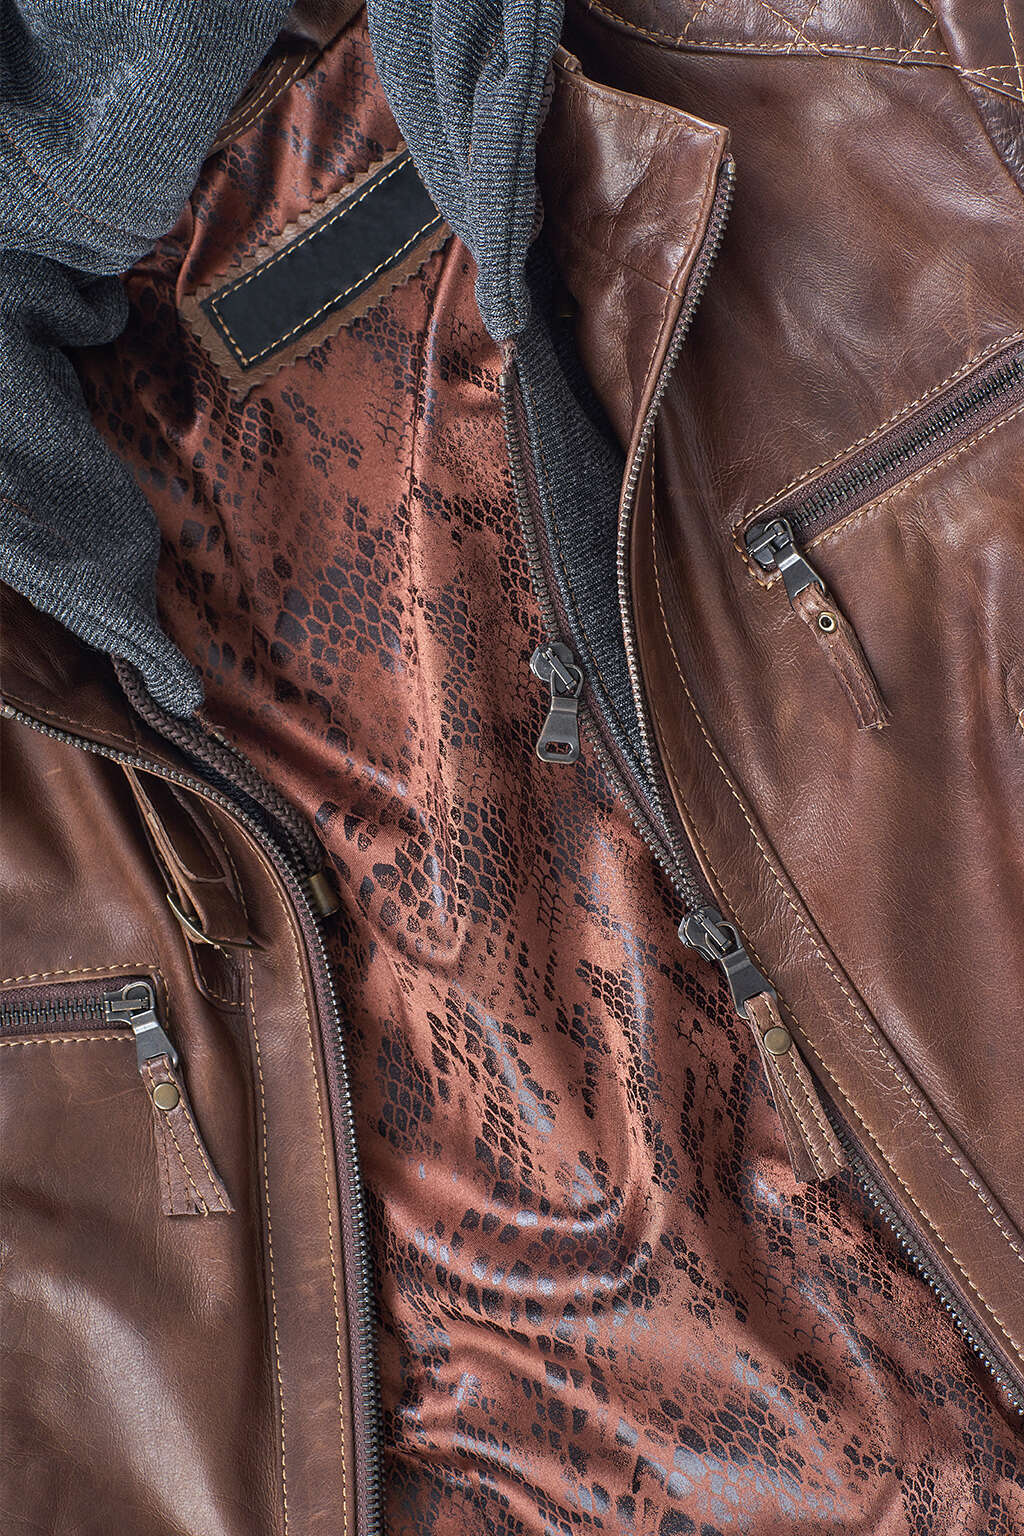 Zipper and Inner Lining Detail of Pecan Cotton Hood Leather Jacket